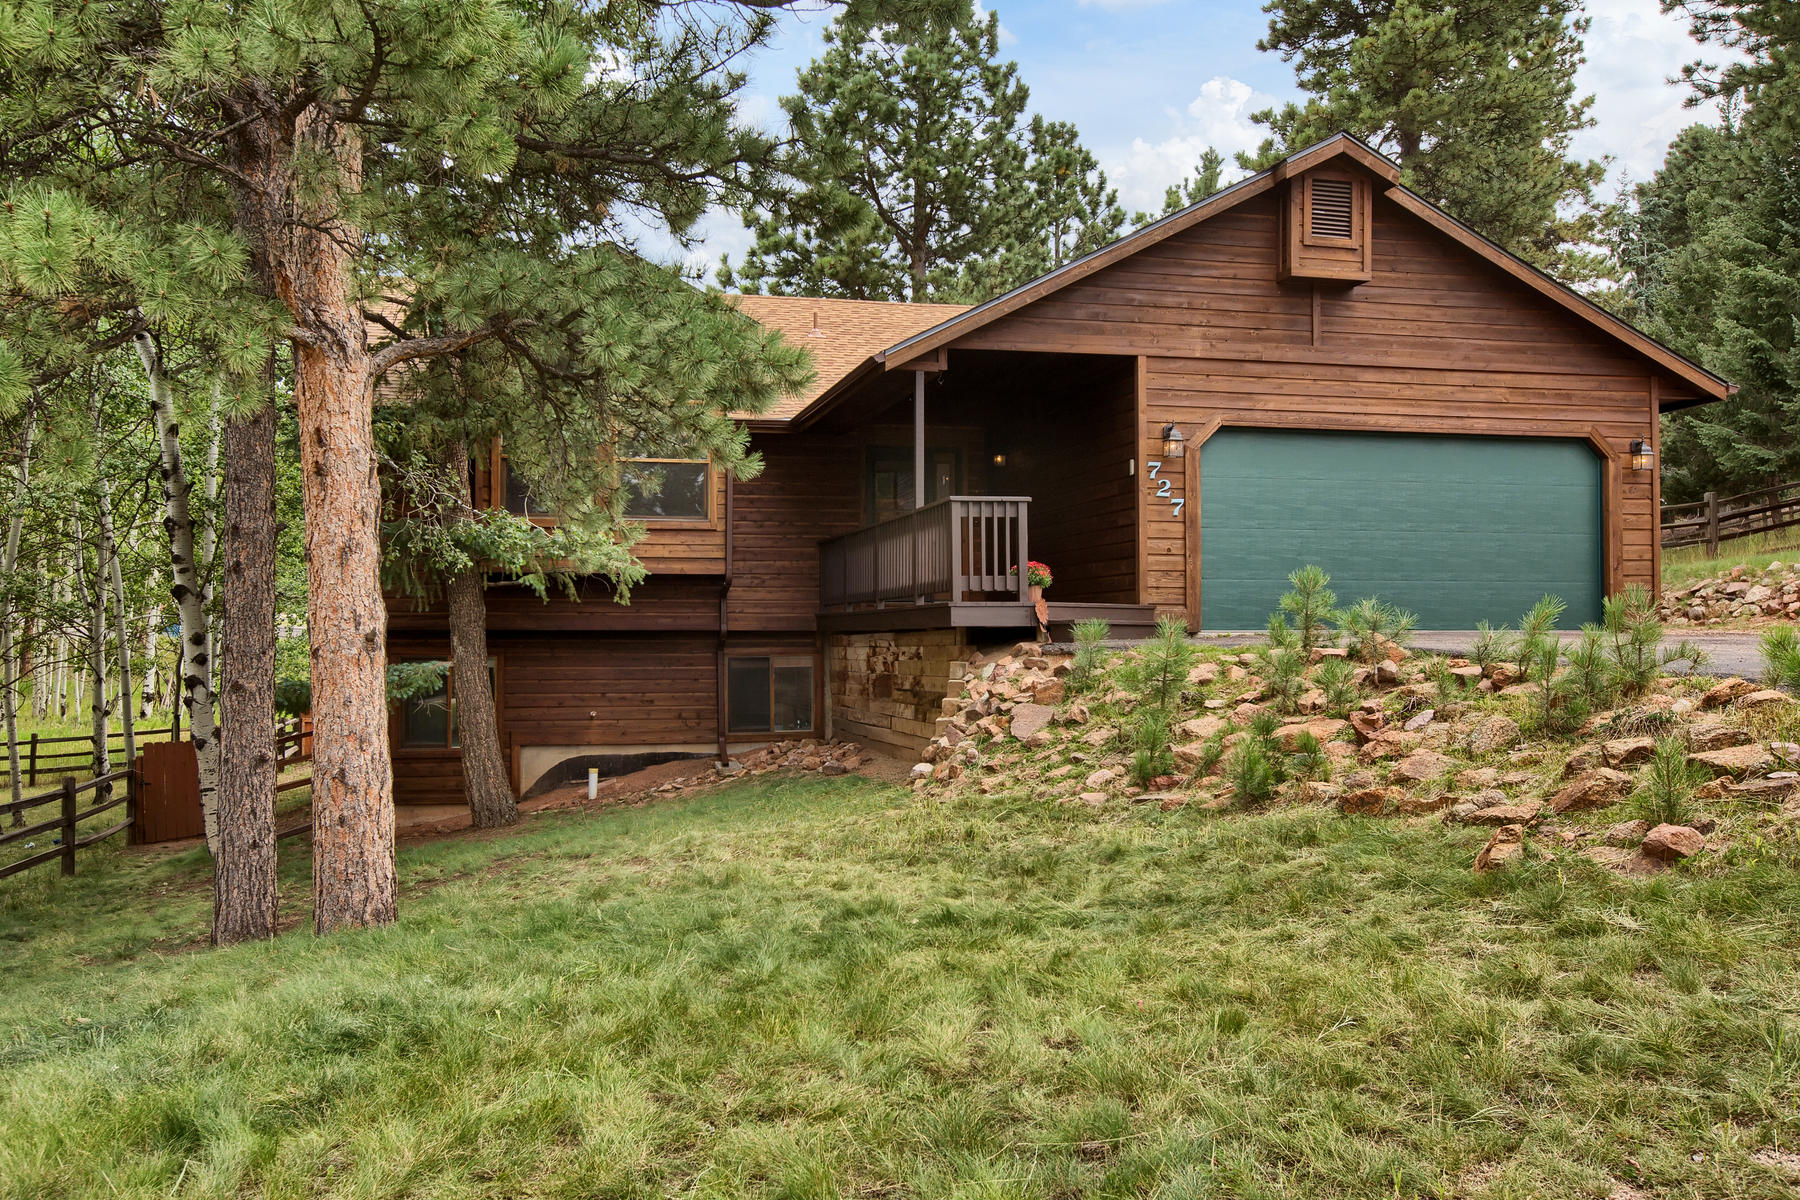 Single Family Homes for Active at Centrally-located ranch home on a cul-de-sac offers a host of new improvements 727 Pinon Ridge Dr. Woodland Park, Colorado 80863 United States